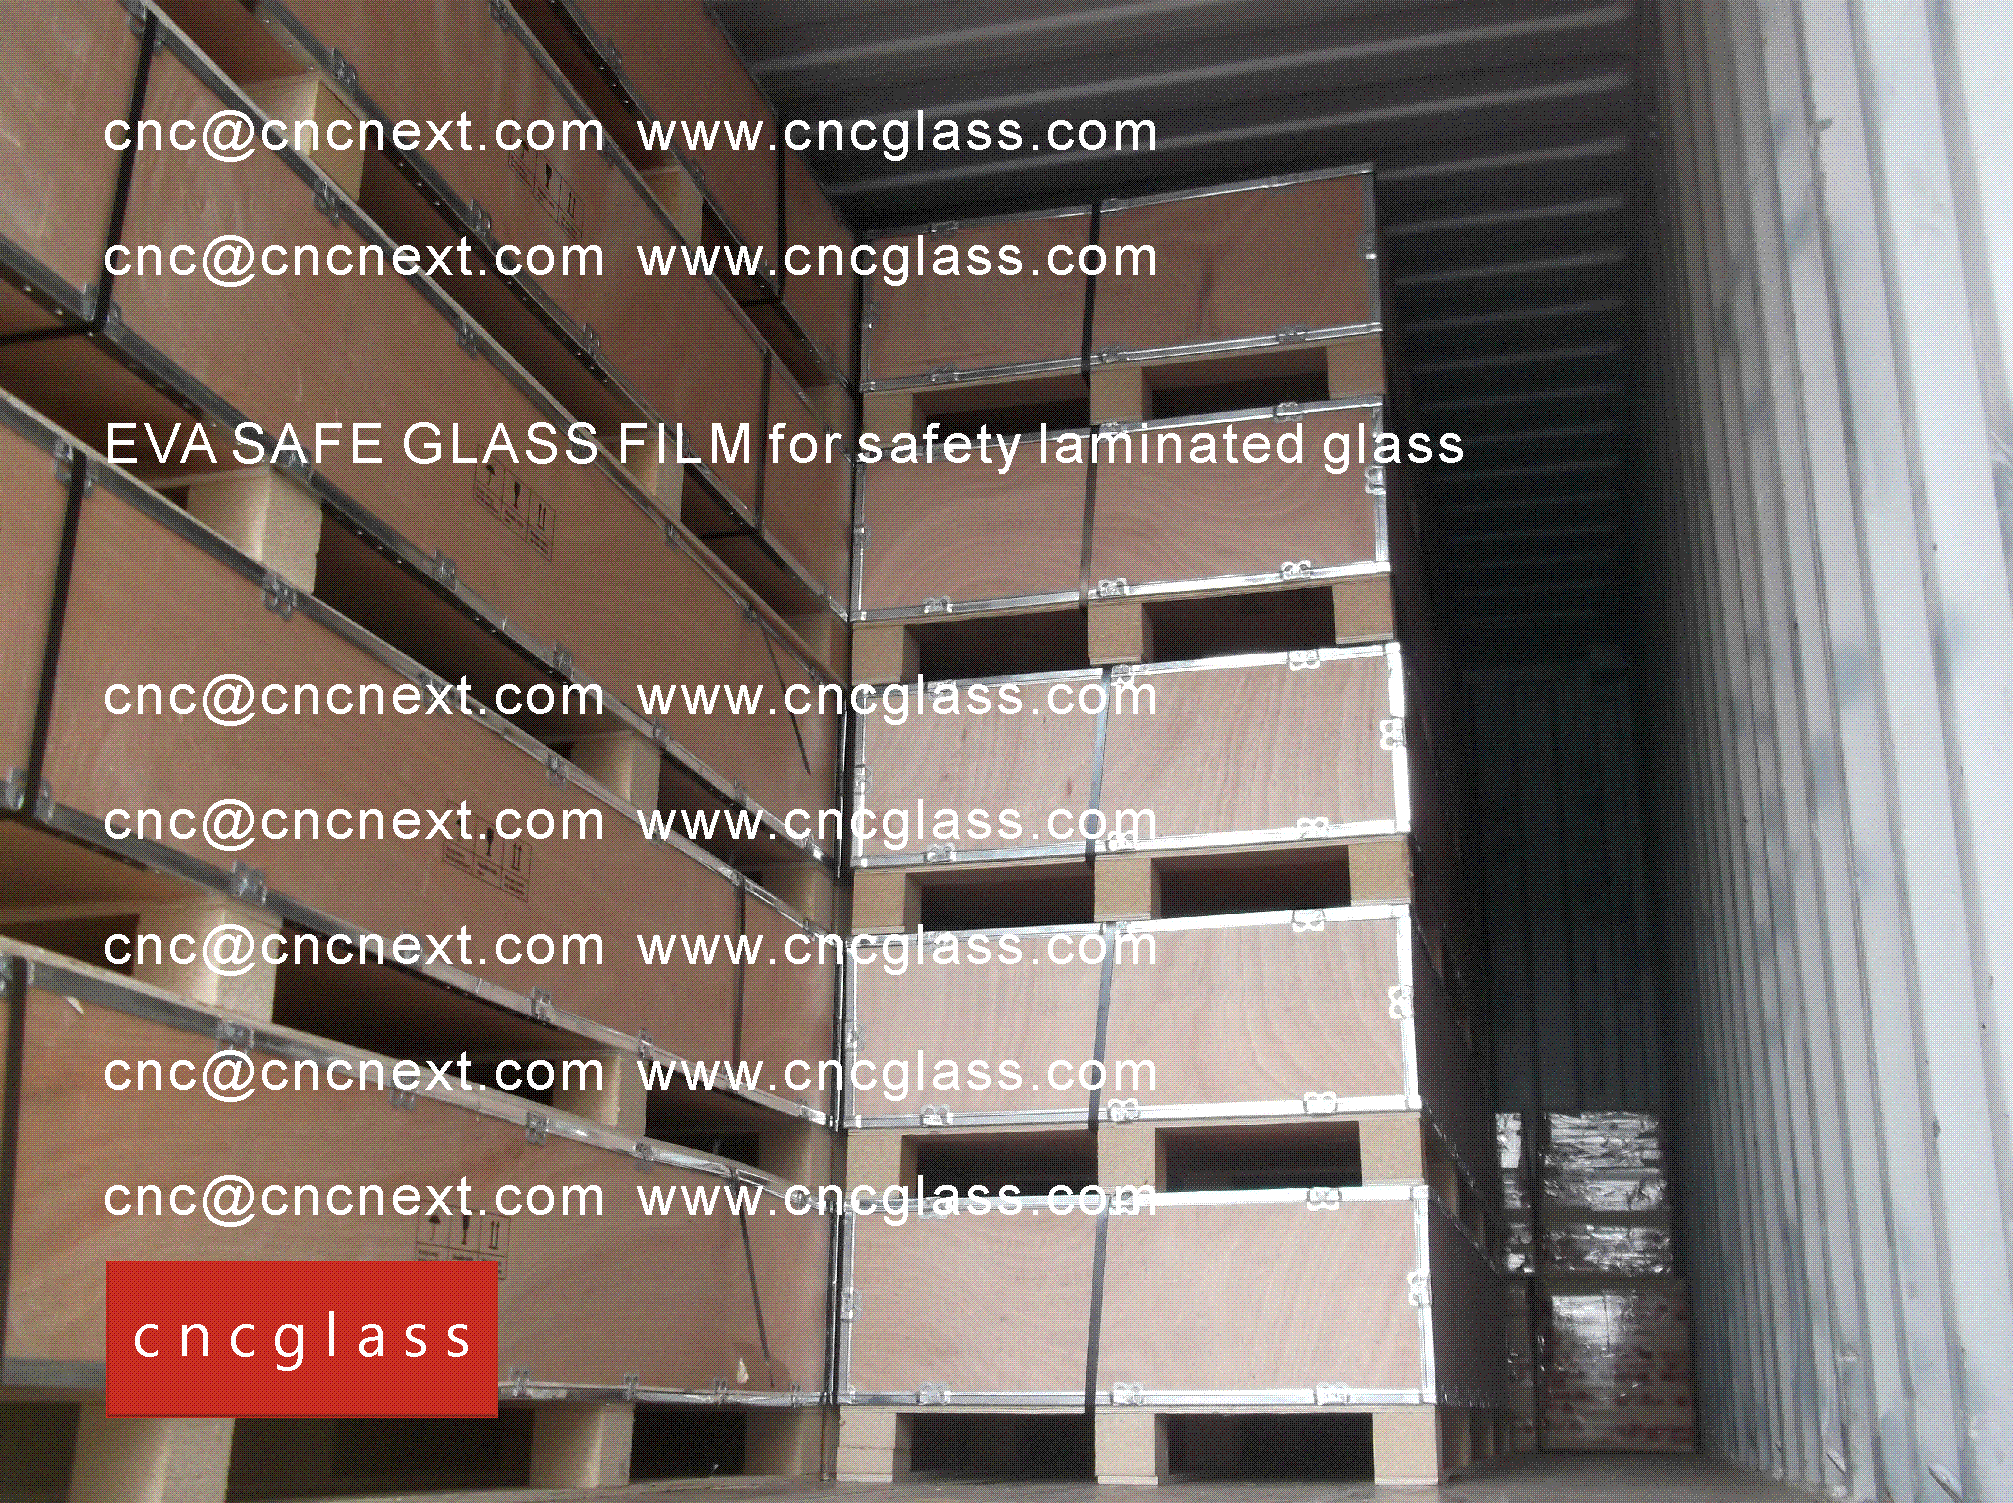 004 EVA SAFE GLASS FILM LOADING CONTAINER (SAFETY LAMINATED GLASS)